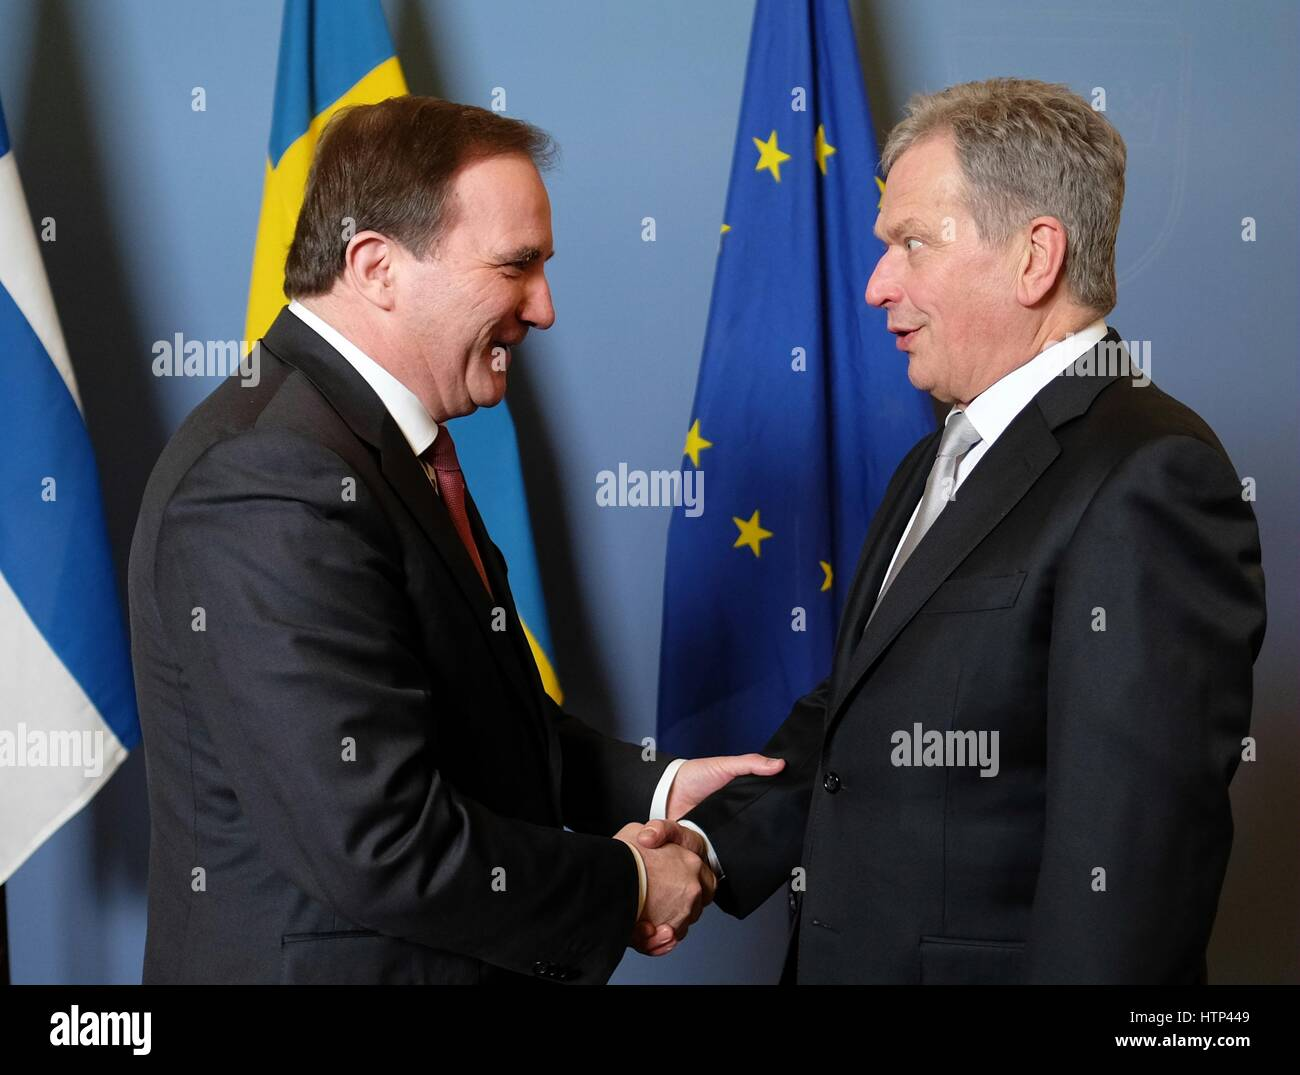 Stockholm. 13th Mar, 2017. Swedish Prime Minister Stefan Lofven (L) meets with Finland's President Sauli Niinisto - Stock Image